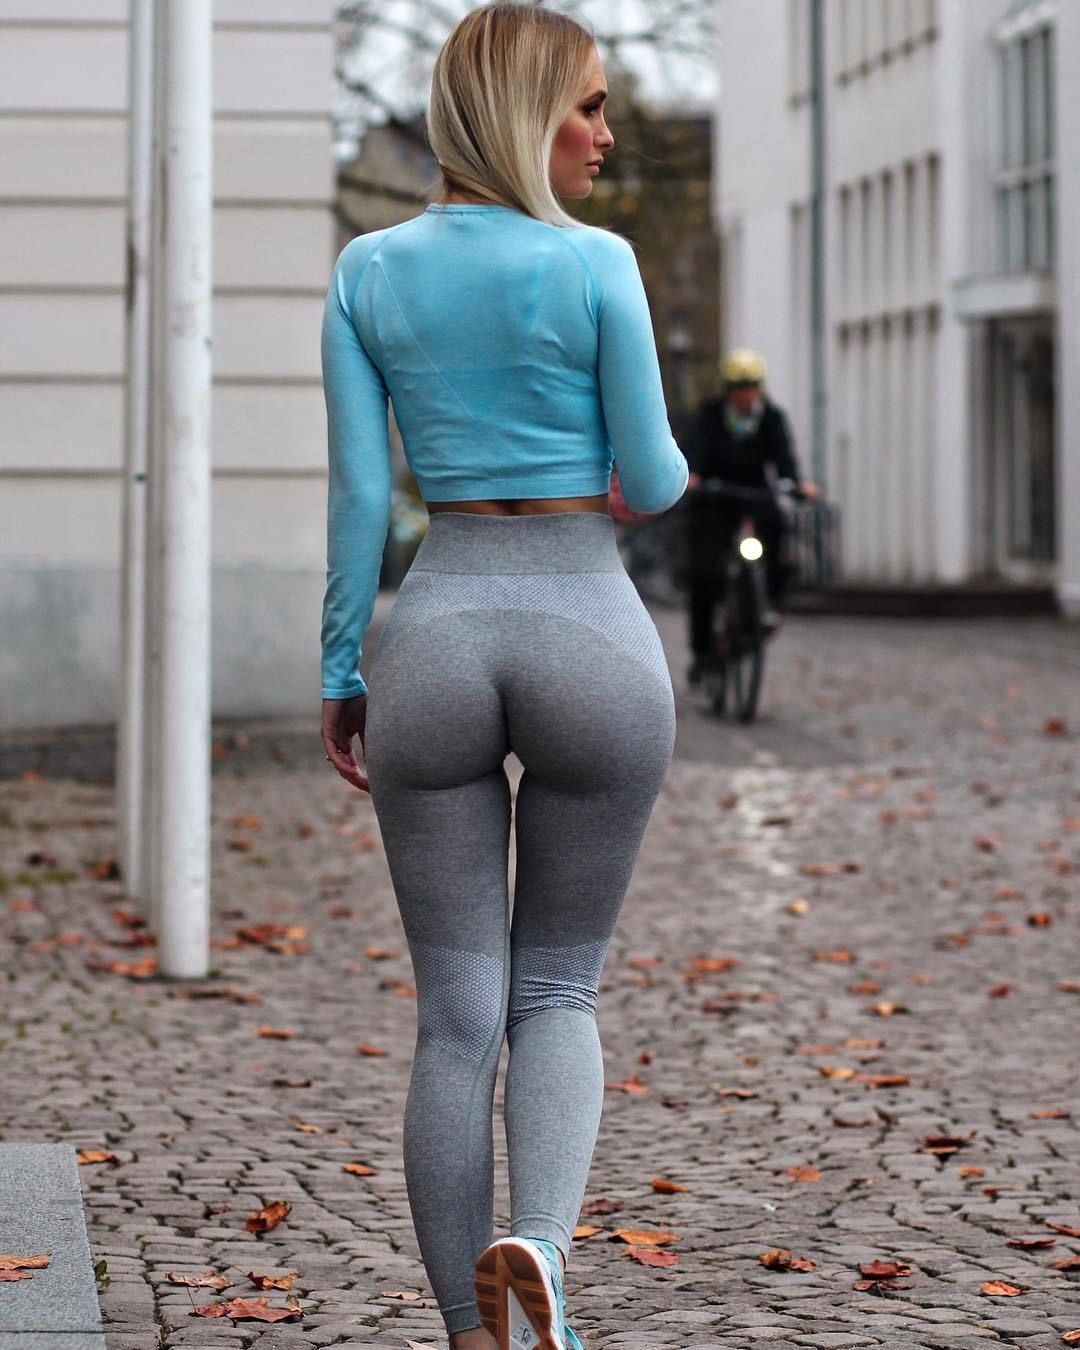 Tight fit babe